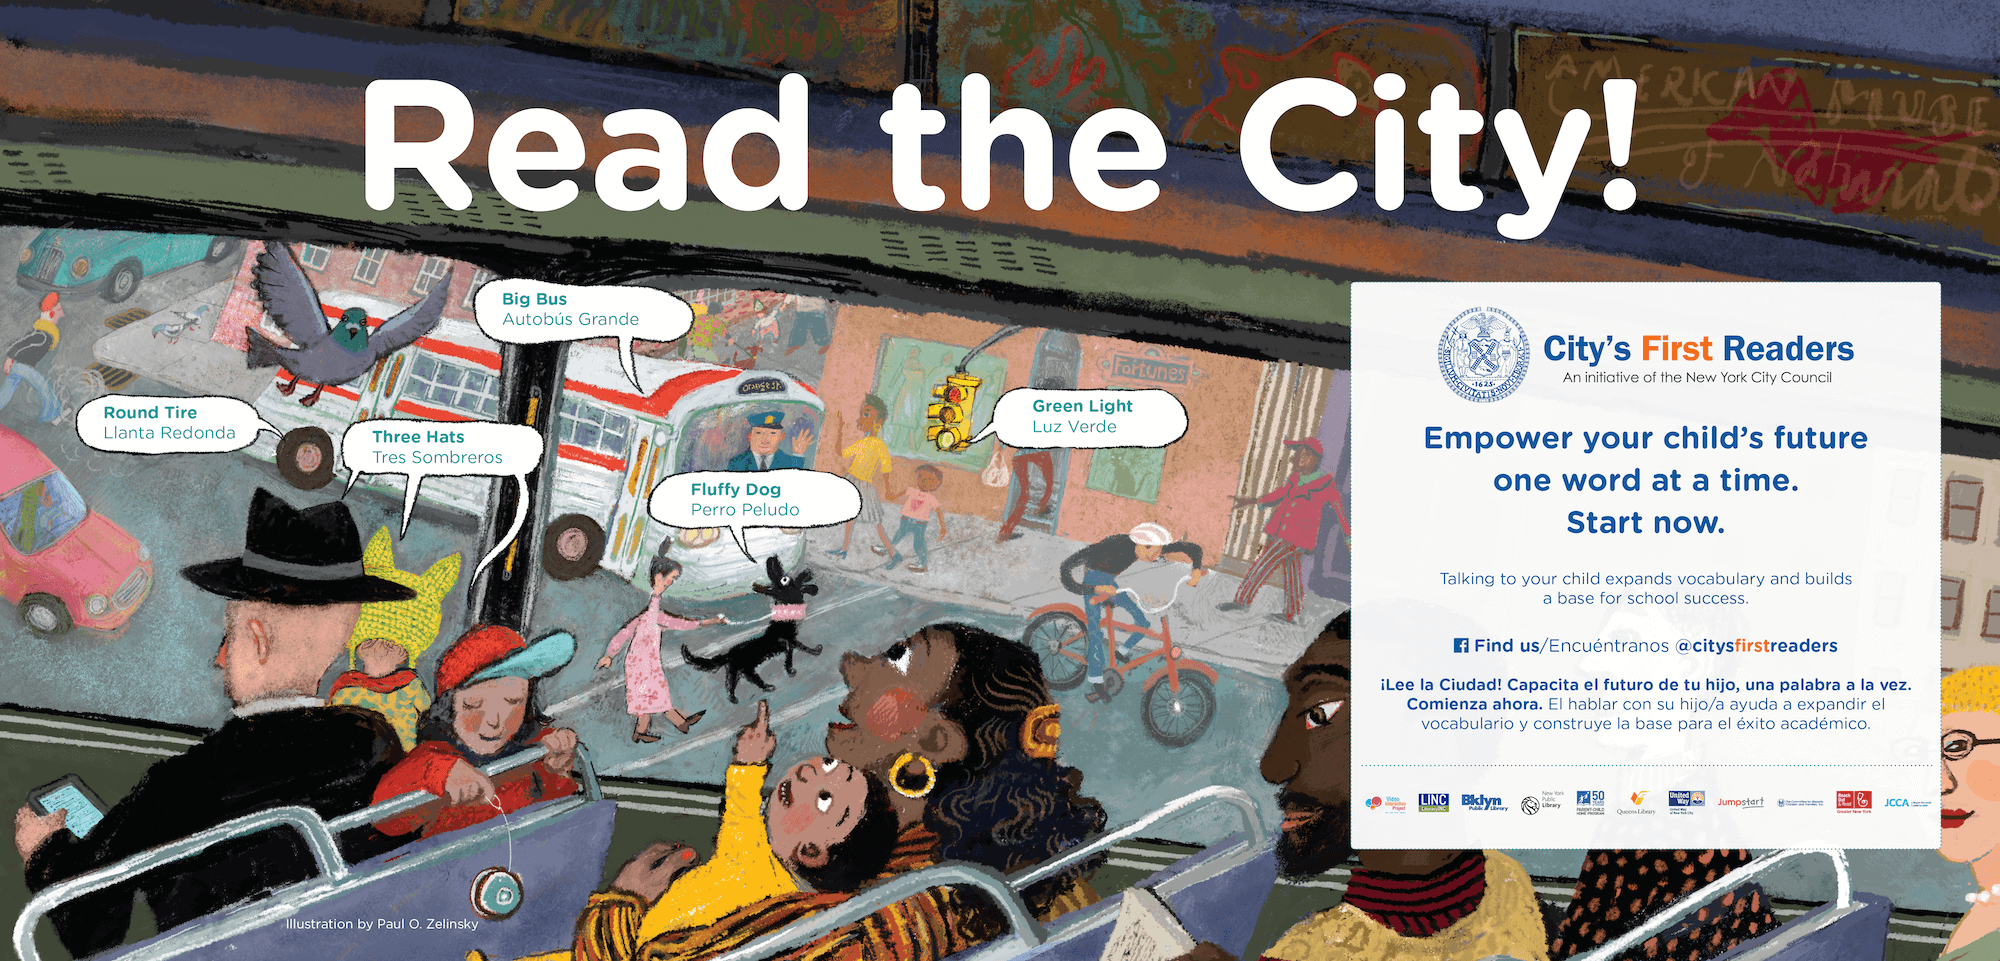 Read the City ad using Paul O. Zelinsky art